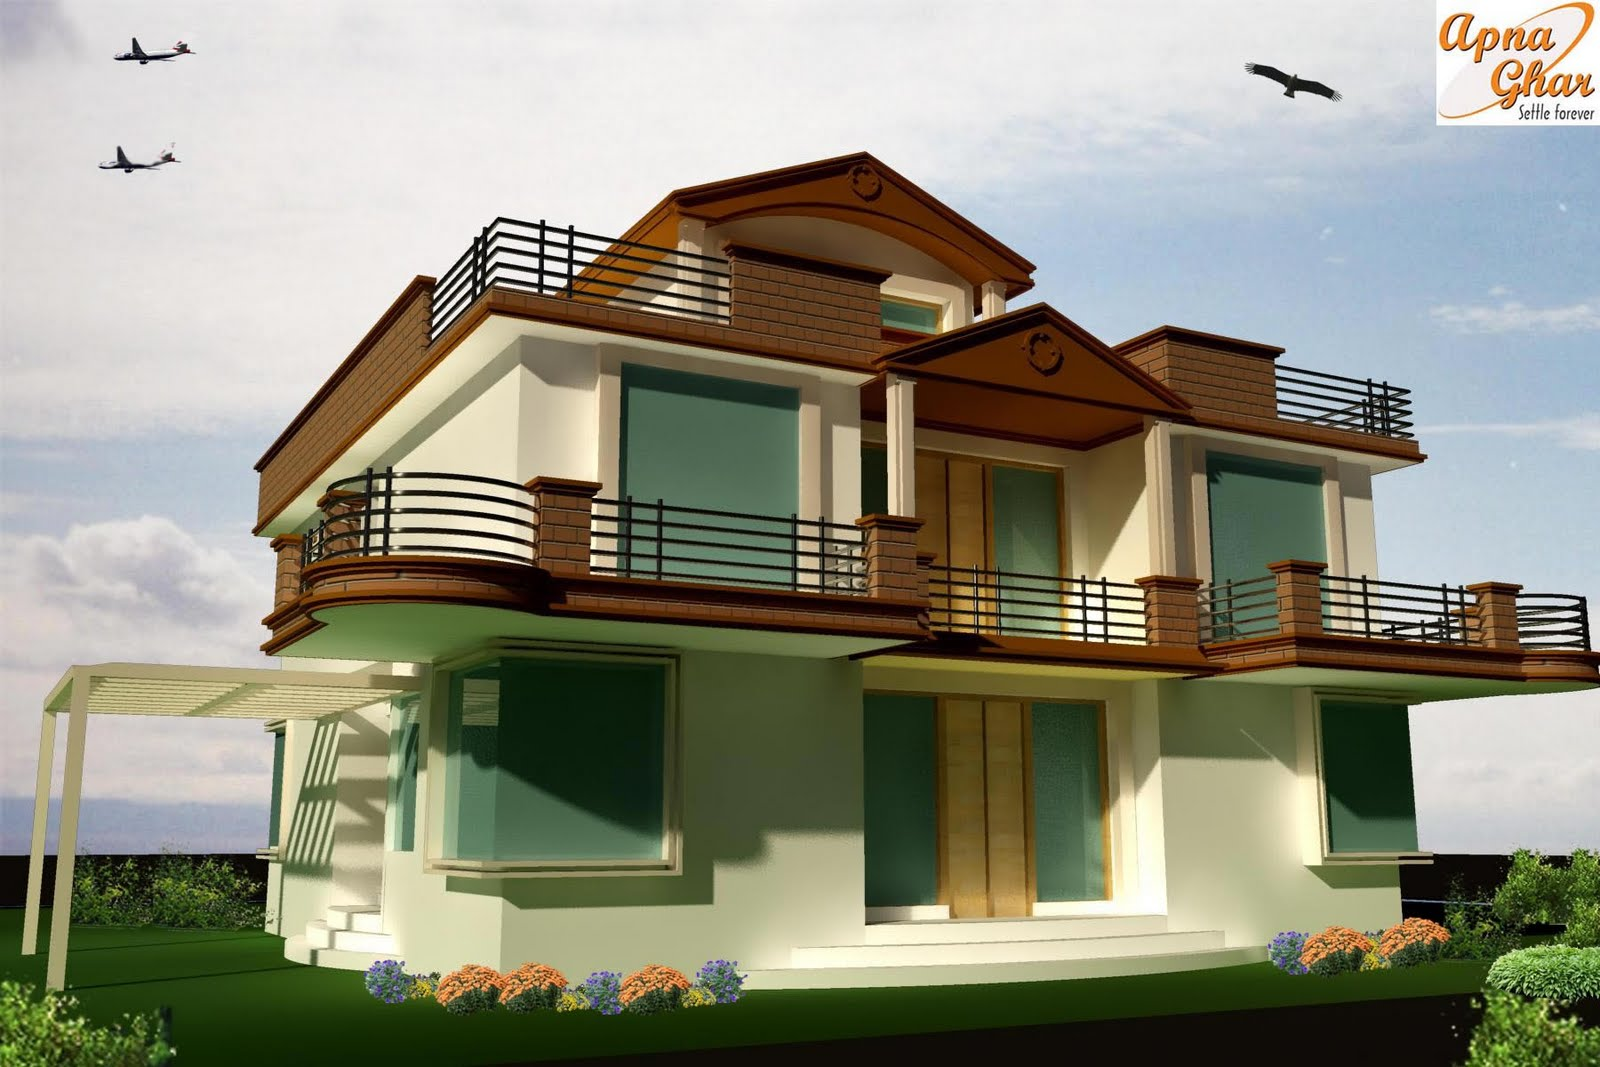 16 best simple residential architectural plans ideas for Residential architecture design